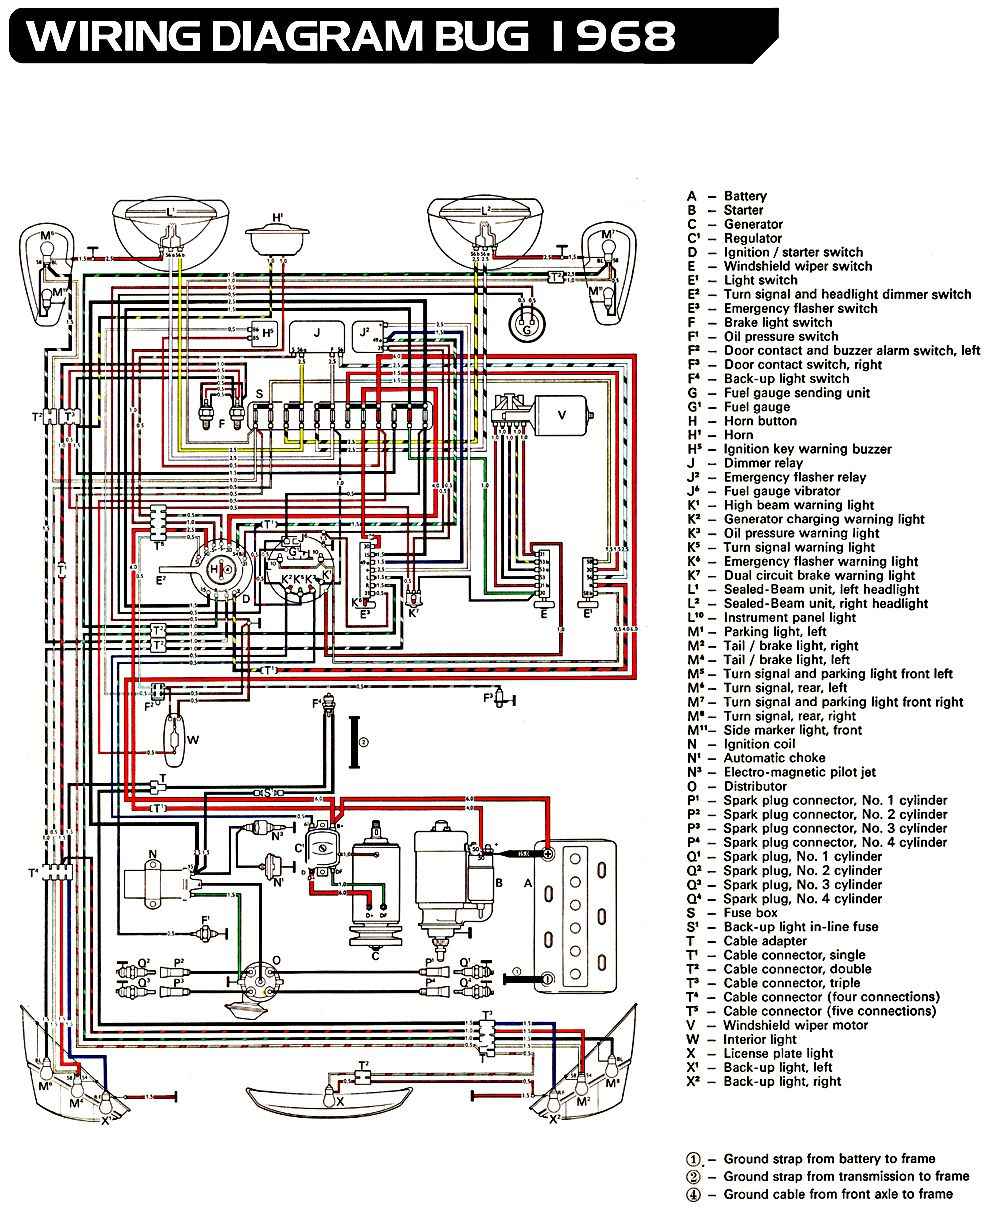 3a1908112d3826270ed5e3be362292bf vw bug ignition wiring diagram 73 vw wiring diagram free vw beetle wiring harness at readyjetset.co